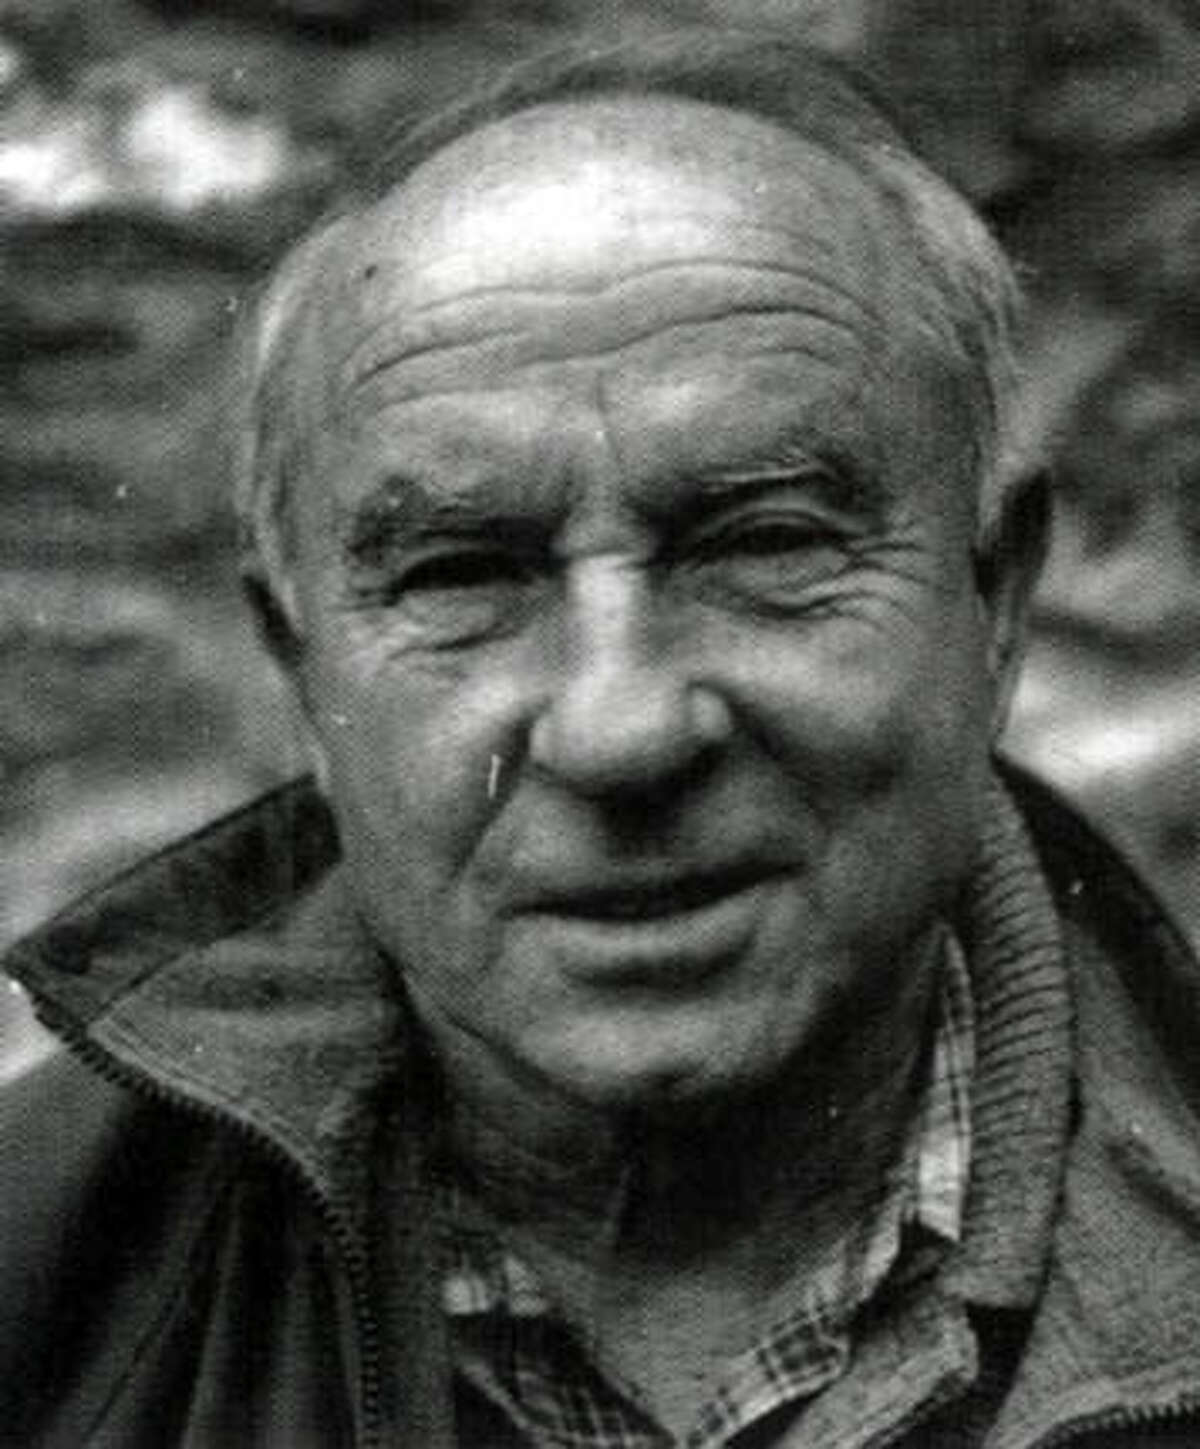 Founder/owner of Ventura, CA based Patagonia, Inc., Yvon Chouinard.